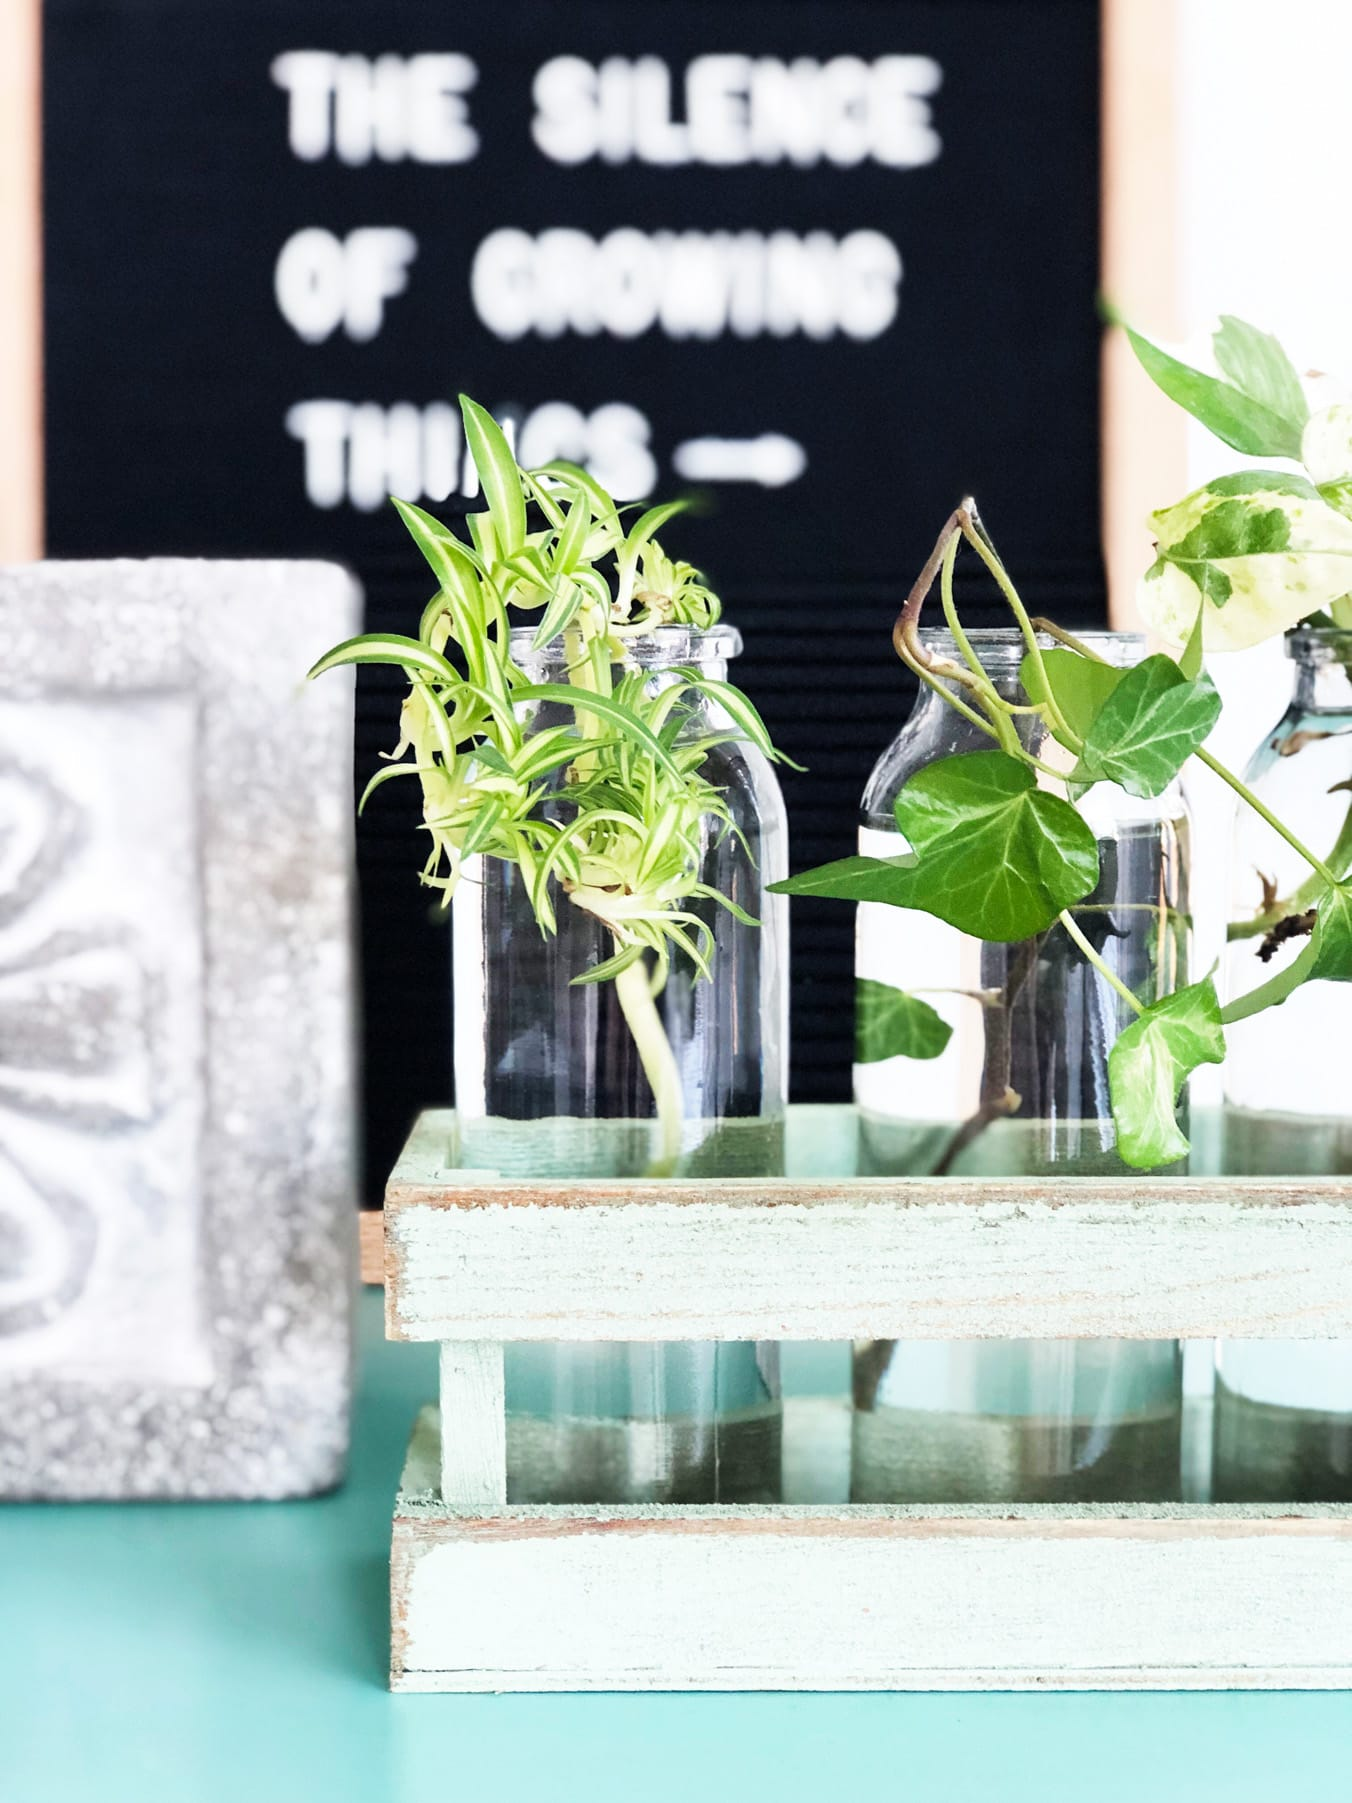 How to Grow Plants From Cuttings